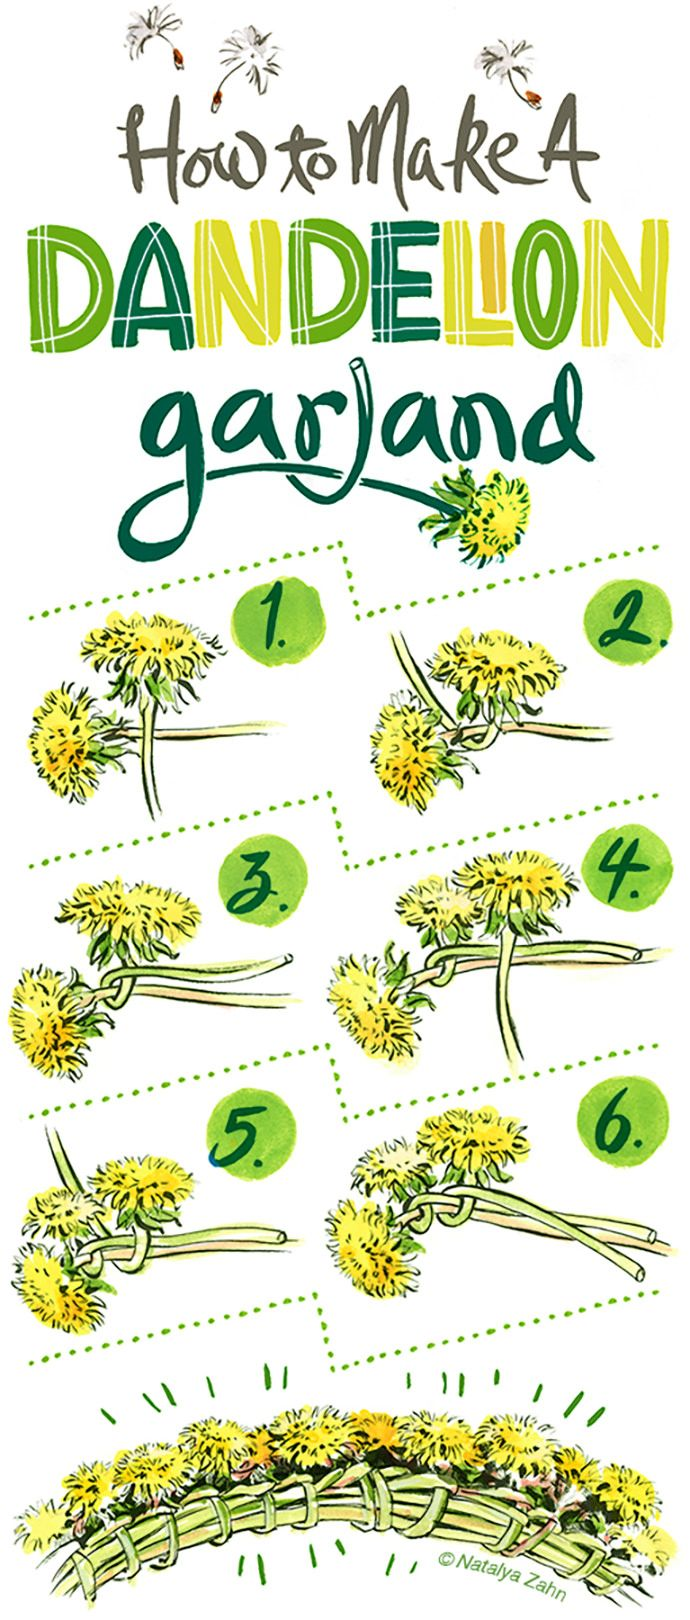 5 dandelion projects to grant every wish dandelions garlands and 5 dandelion projects to grant every wish handmade charlotte izmirmasajfo